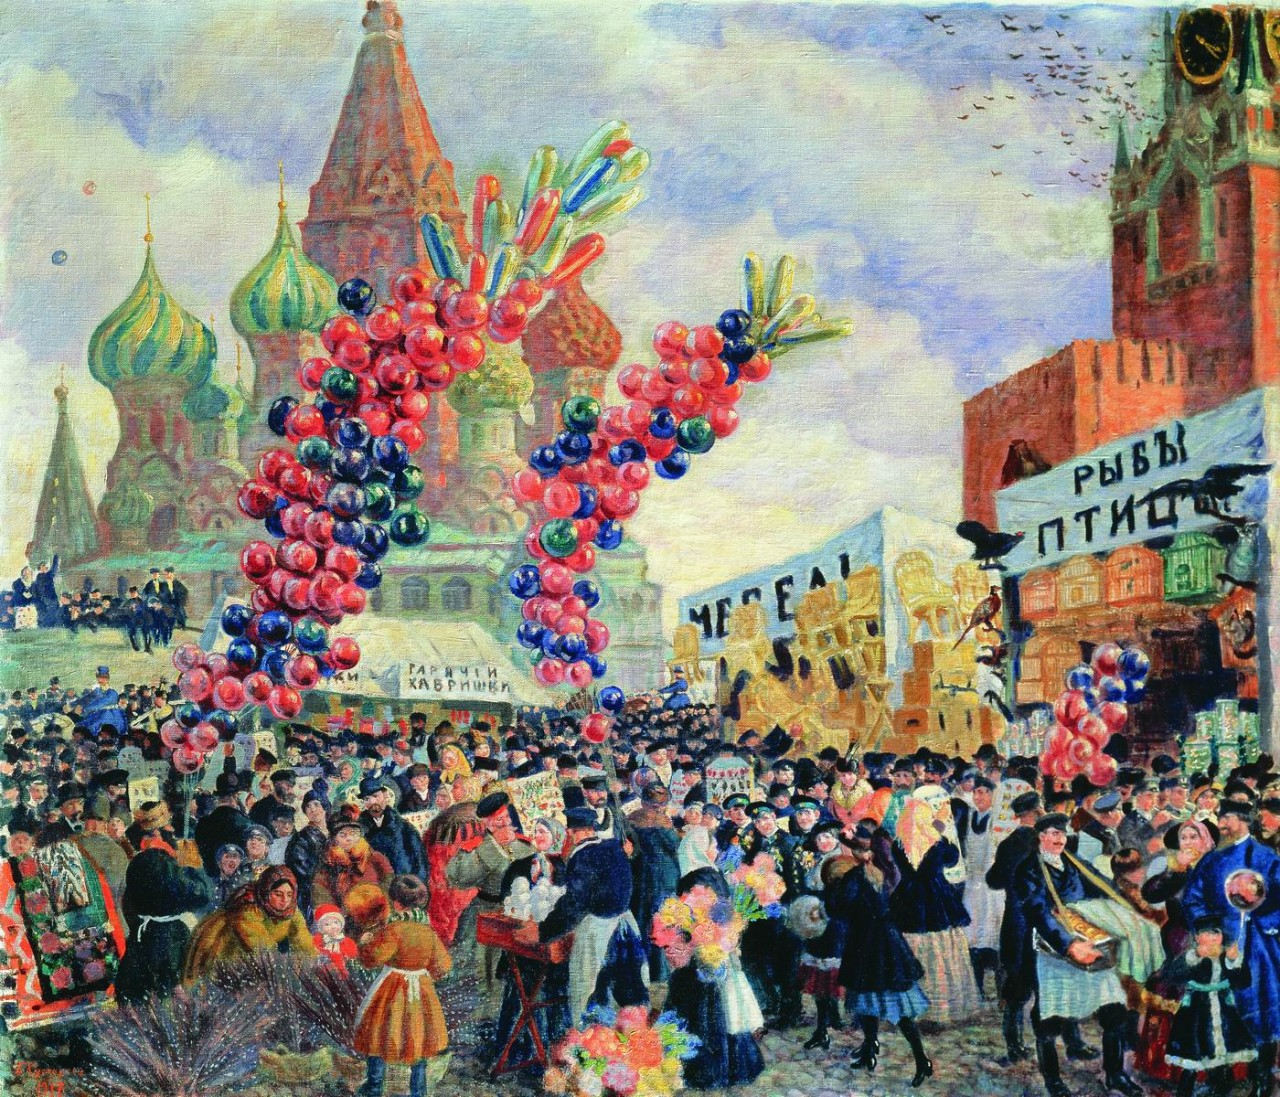 https://upload.wikimedia.org/wikipedia/commons/1/16/Palm_Market_with_Spassky_Gate_%28Kustodiev%2C_1917%29.jpg